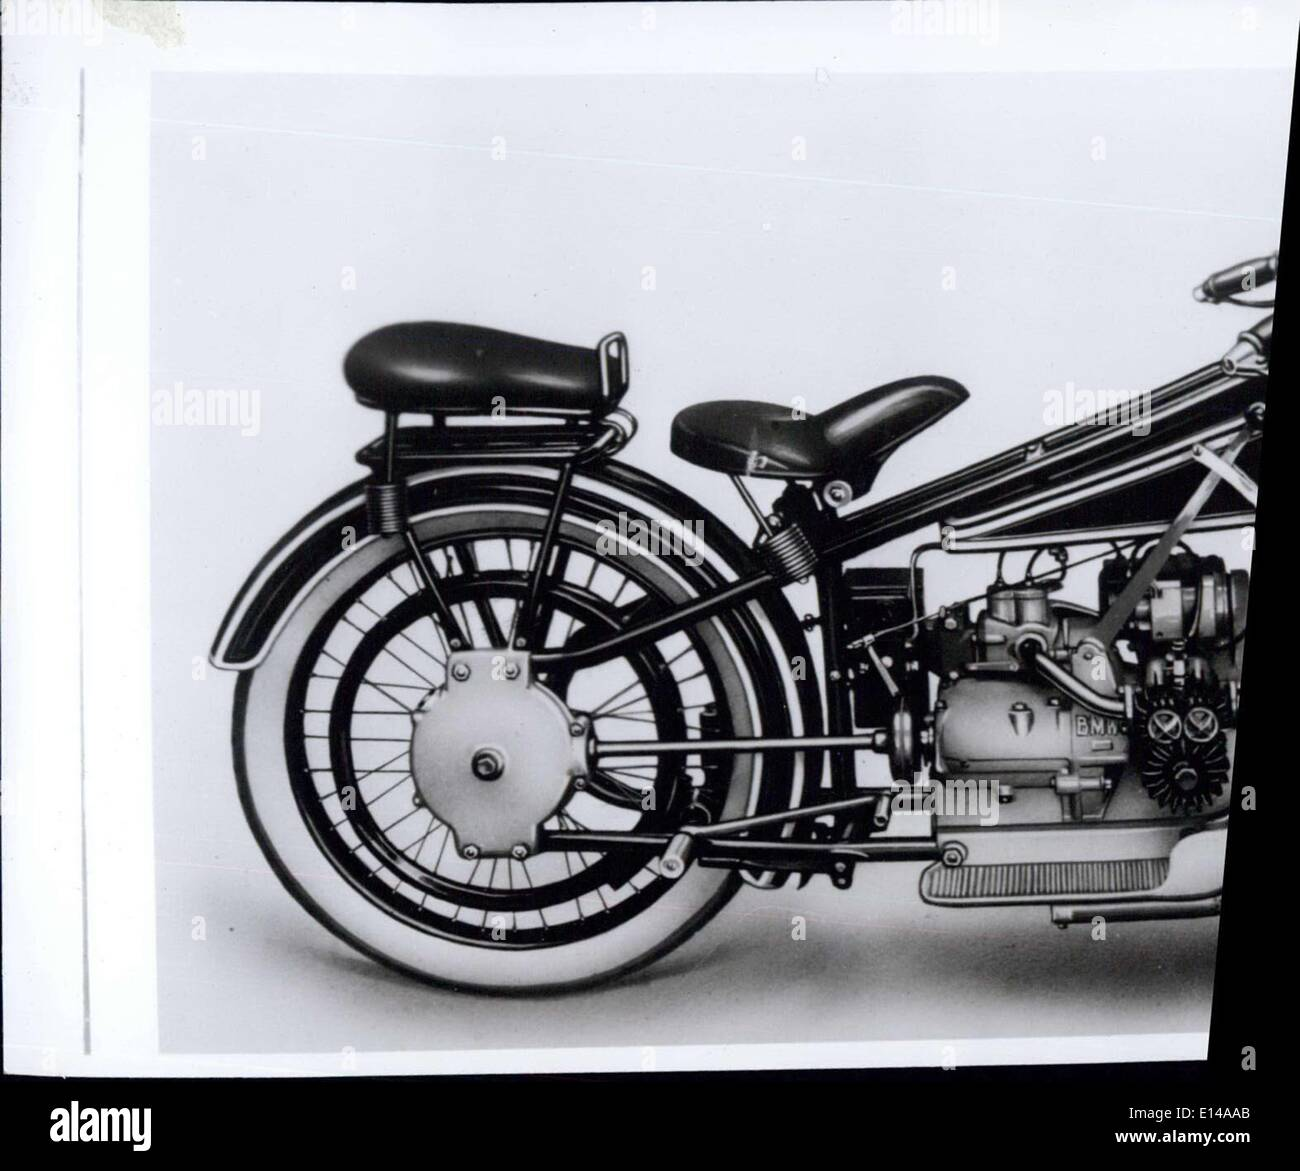 Apr. 17, 2012 - ''(Illegible)''irst BMW motorcycle, equipped ''(Illegible)''tor'', 2 horizontal cylinders, ''(Illegible)''rdan'' axle, double-steeltube ''(Illegible)''e sensation of the 1923 Paris. - Stock Image